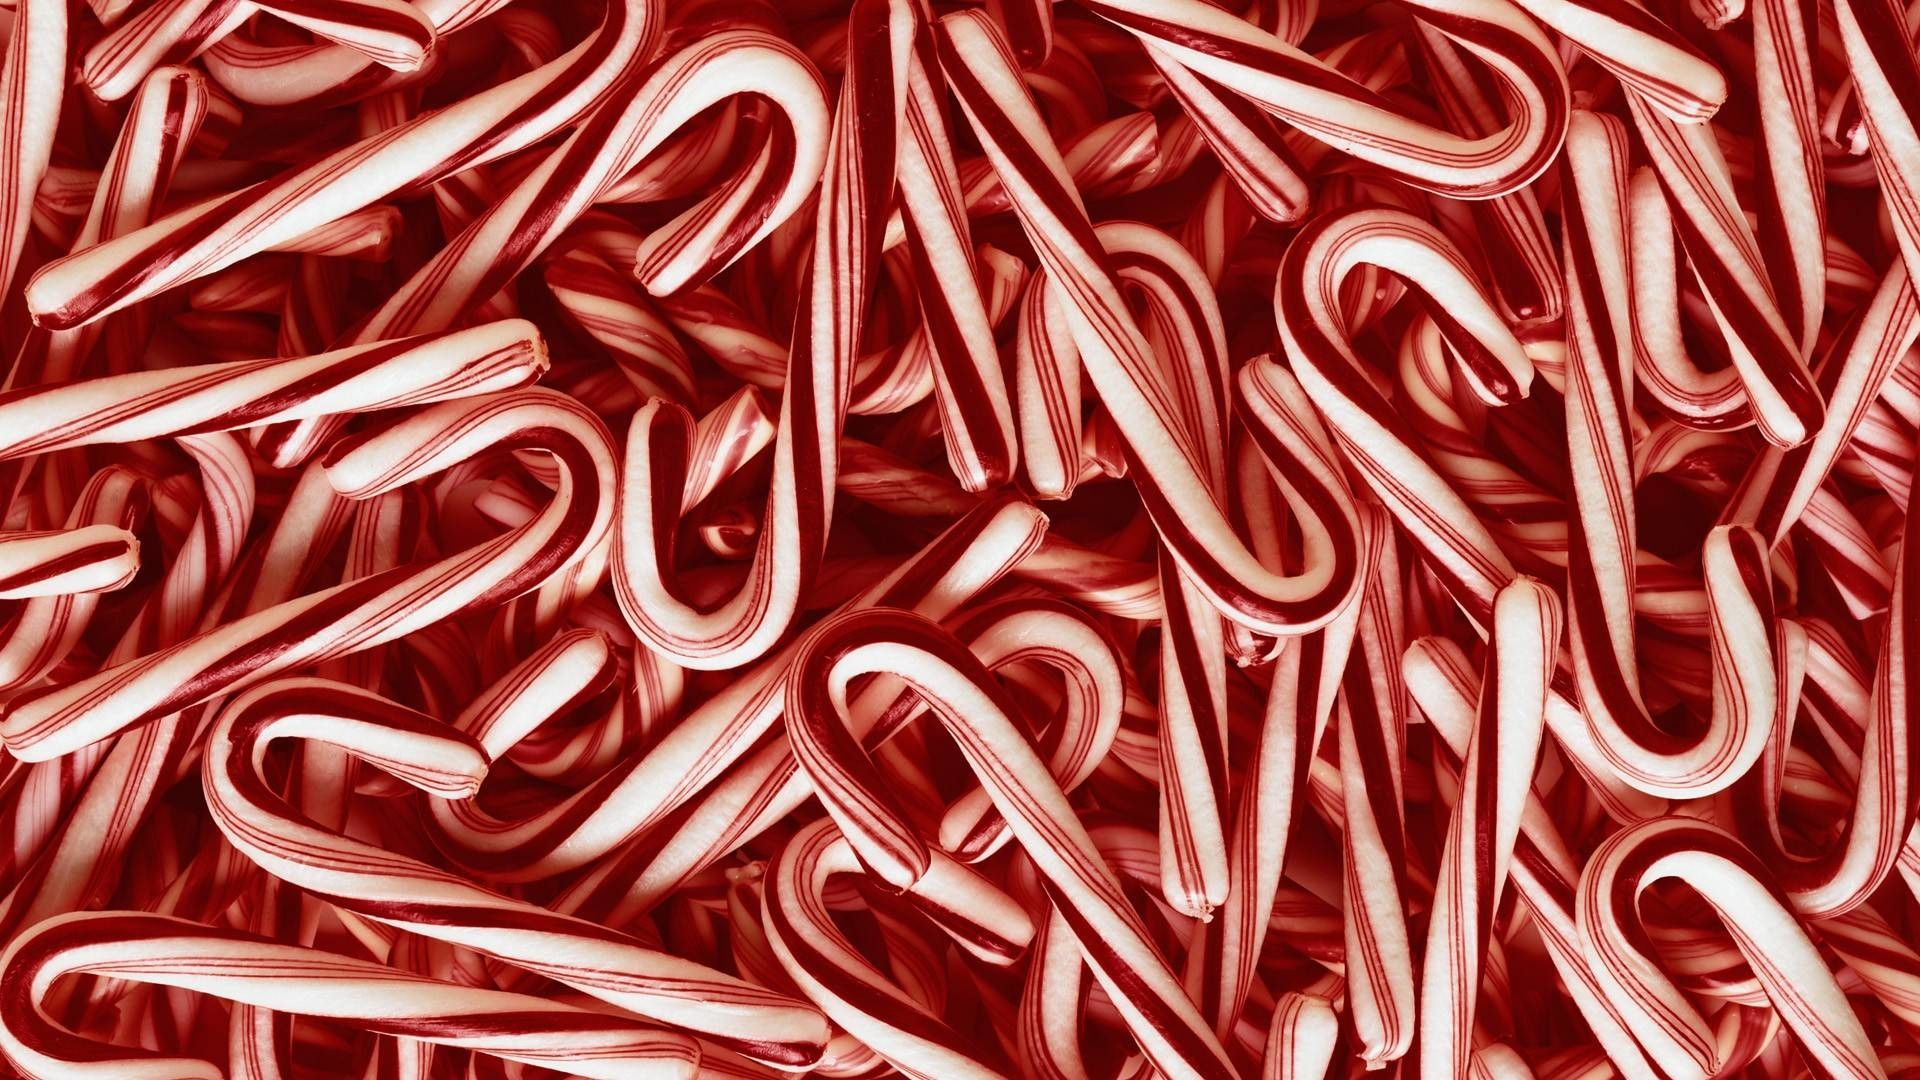 1920x1080 Candy Canes 1920×1080 Wallpaper 1666040